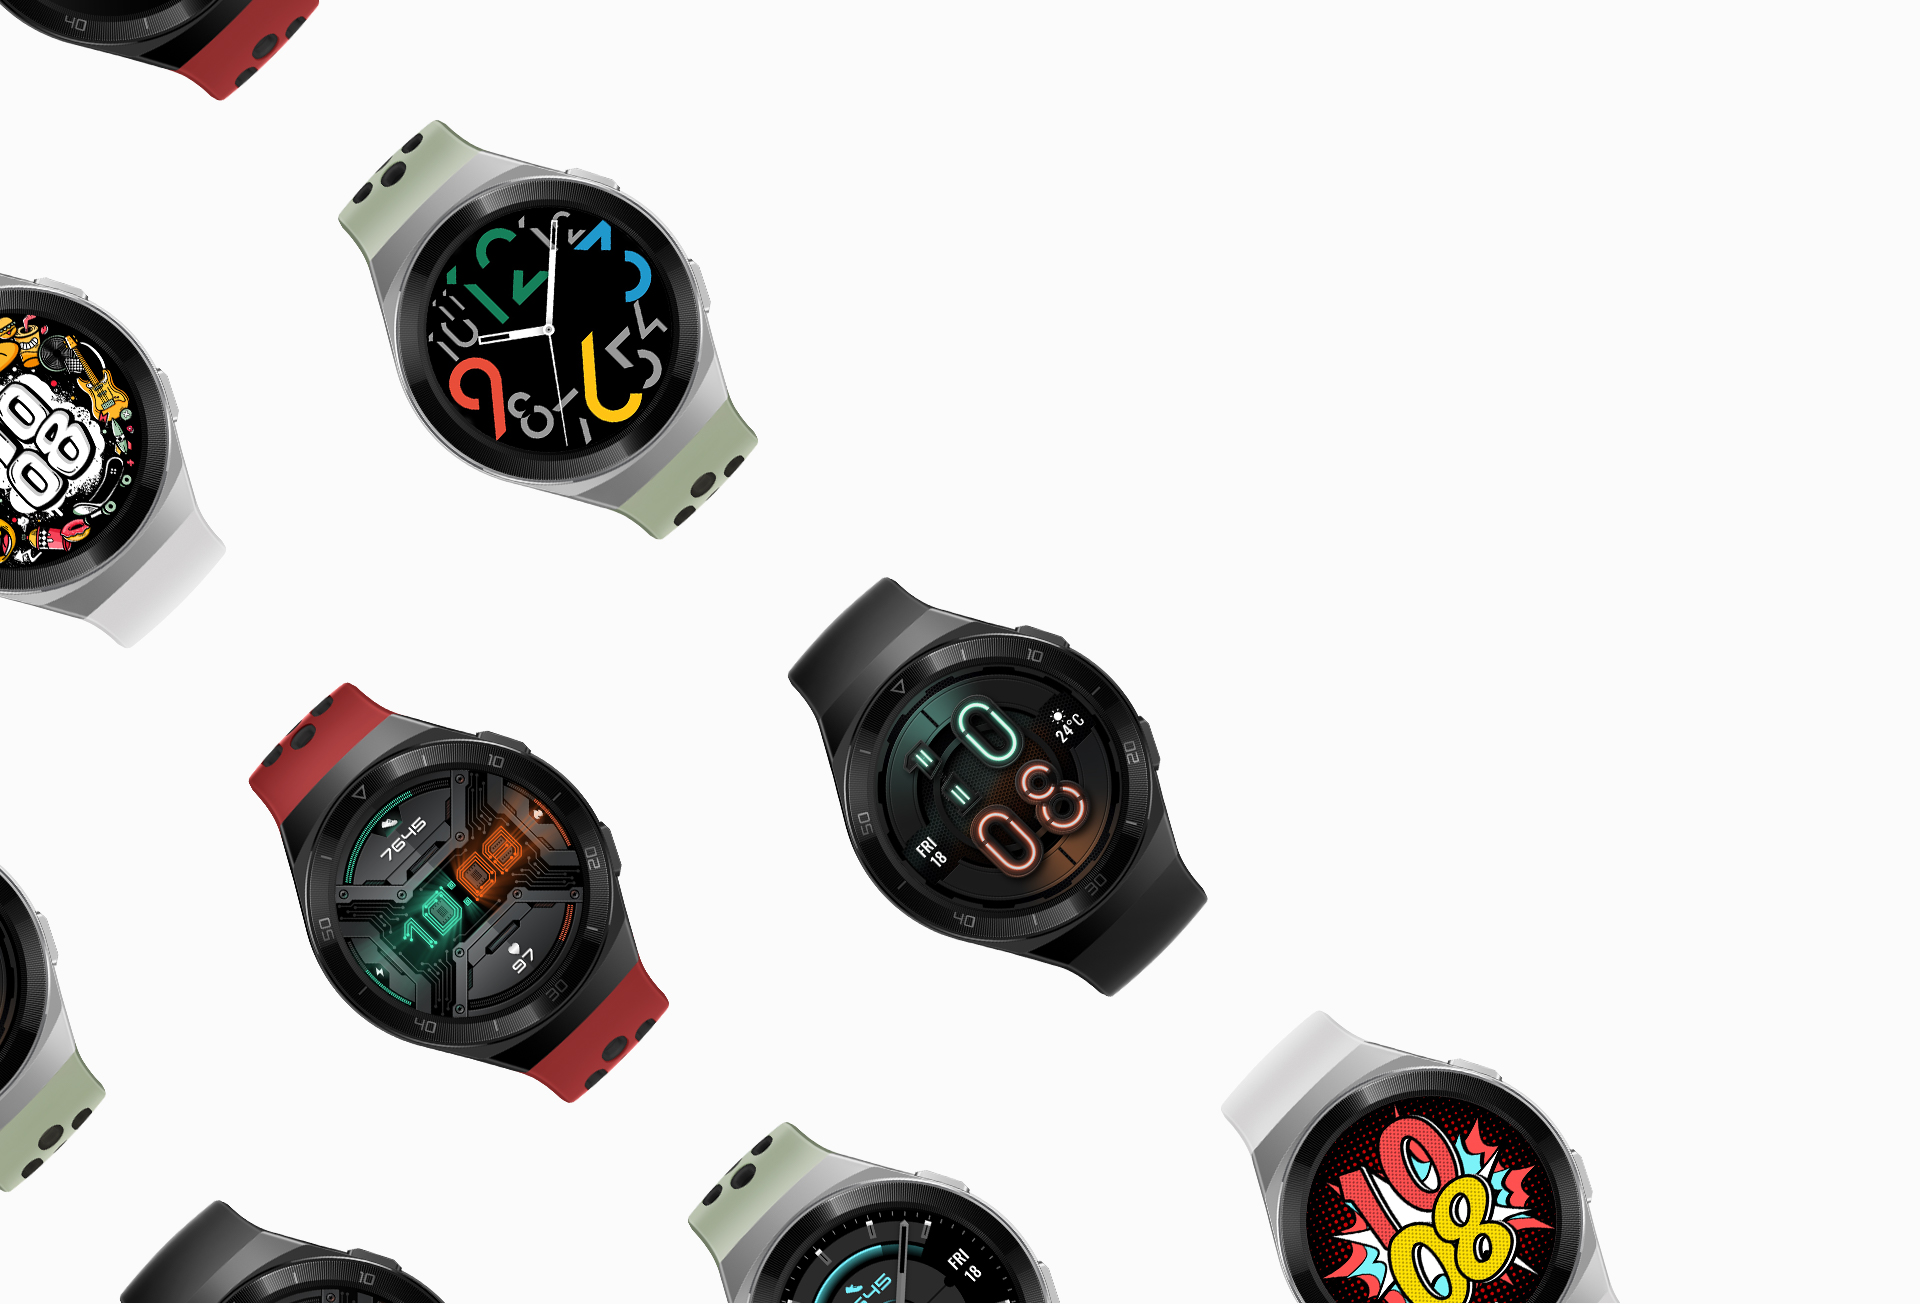 HUAWEI WATCH GT 2e watch face